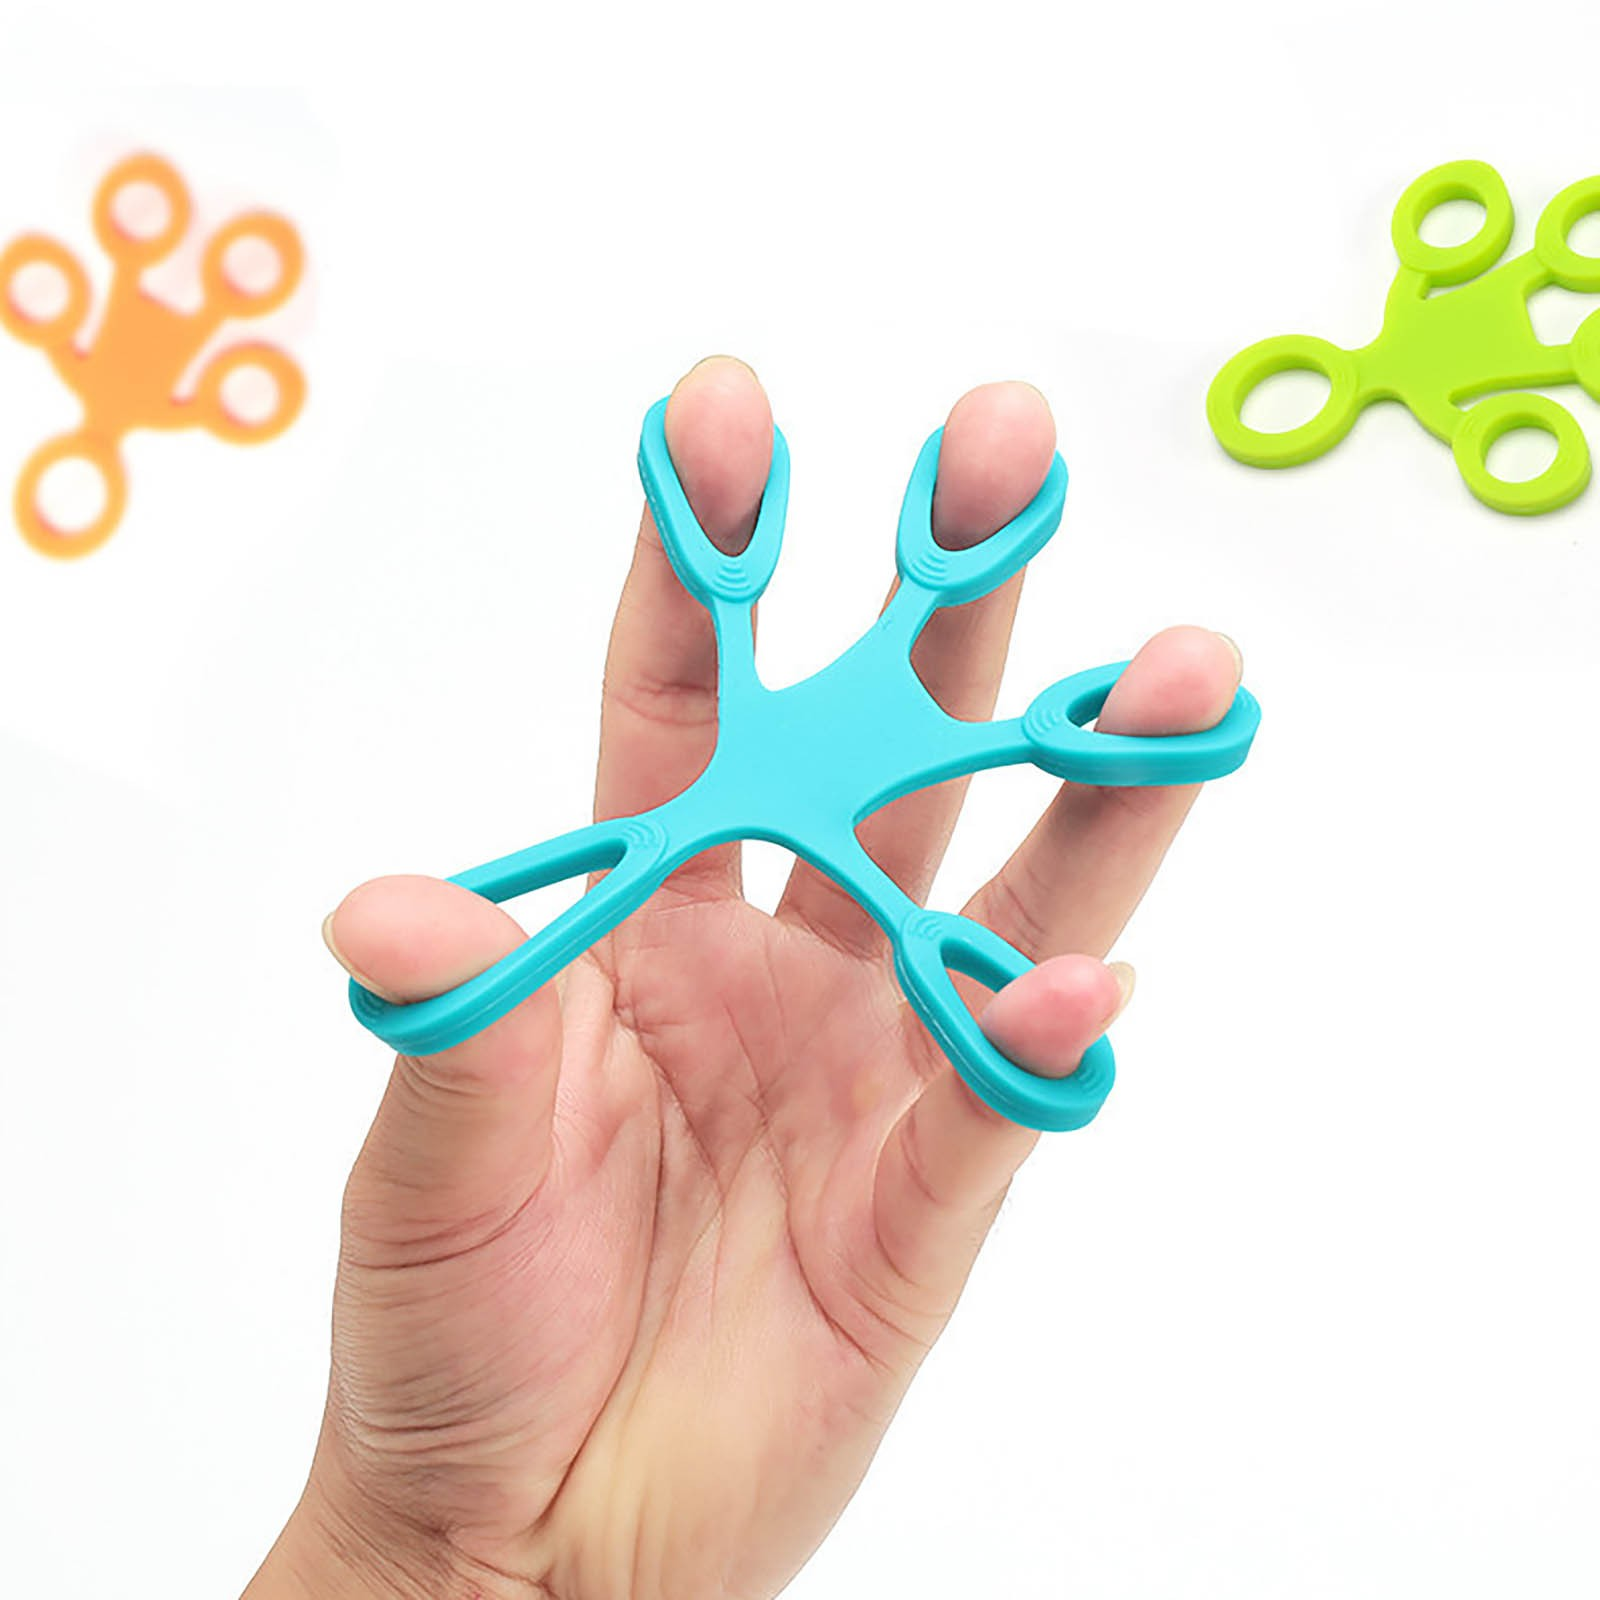 Toys Hand-Ring Finger-Puller Fidget Gifts Antistress Children Silica-Gel Adult for Squish